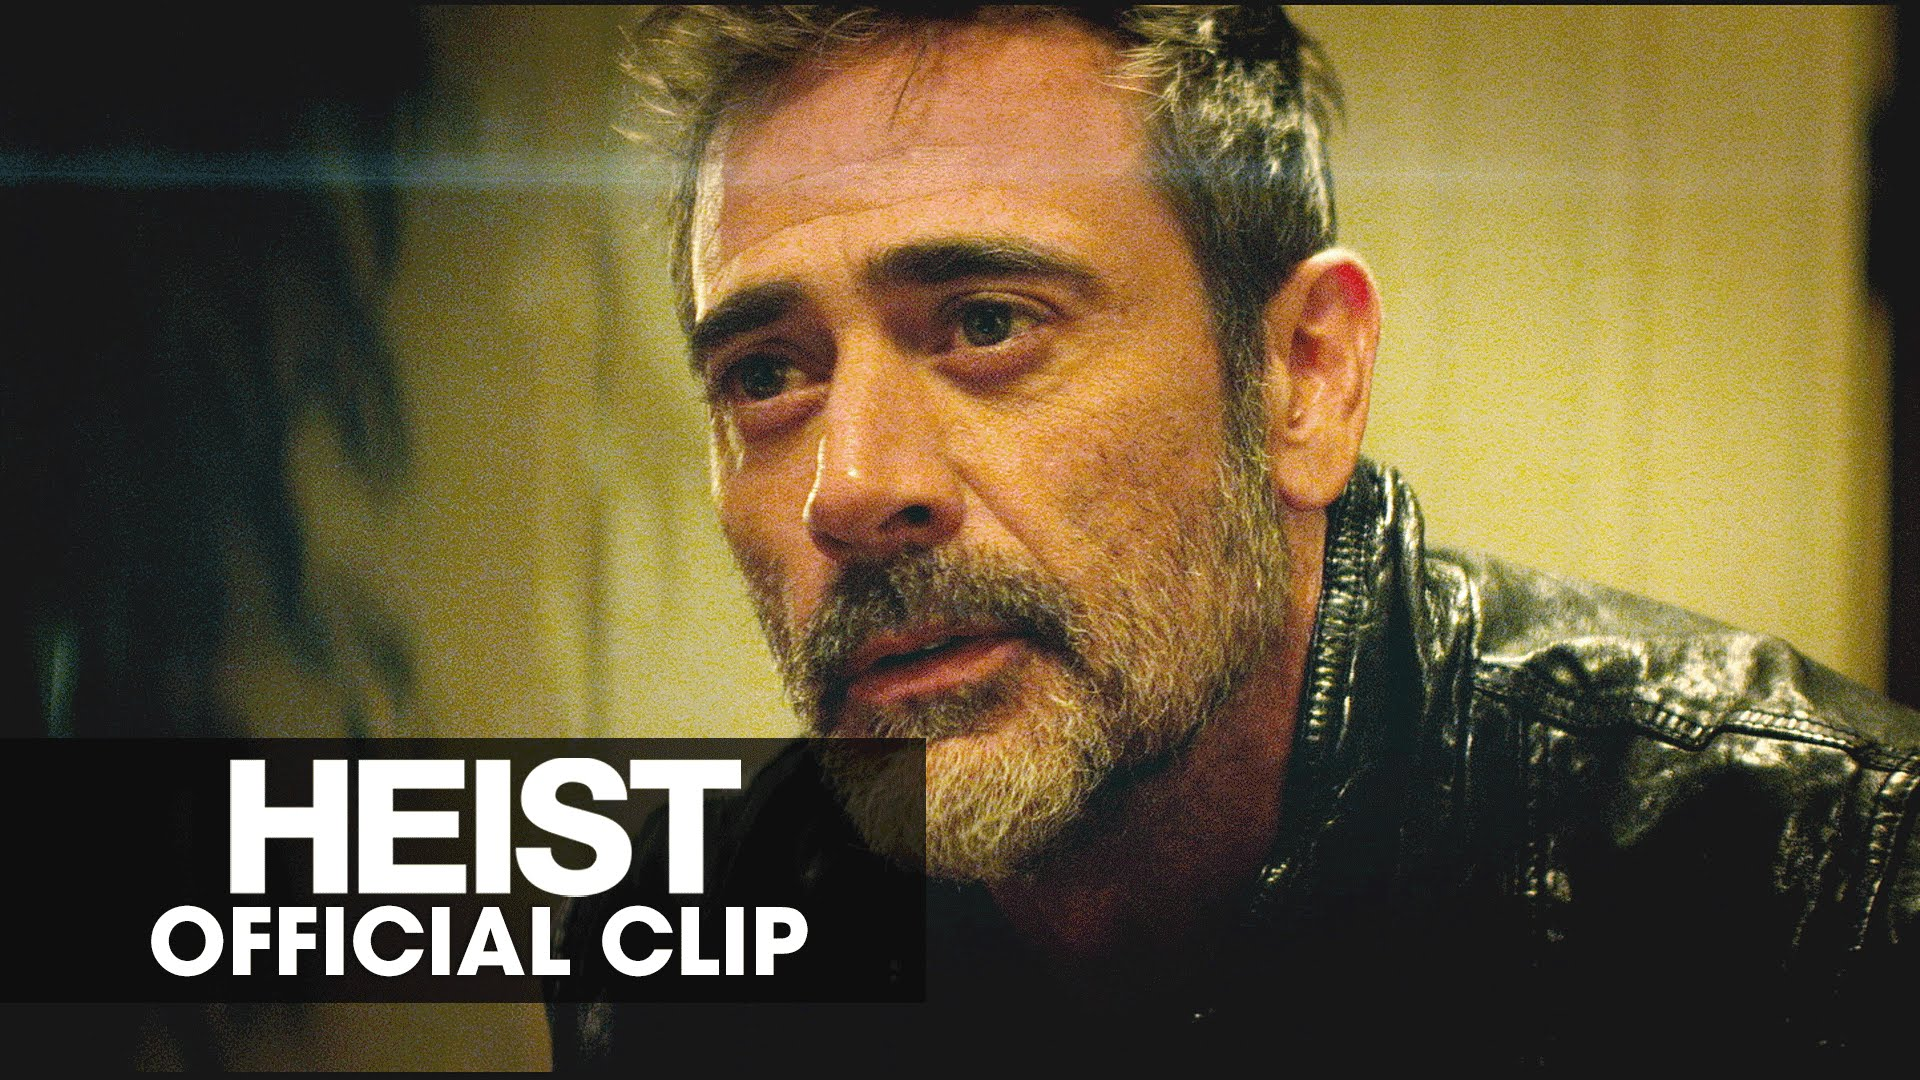 HEIST (2015 Movie – Starring Robert De Niro, Jeffery Dean Morgan) – Official Clip